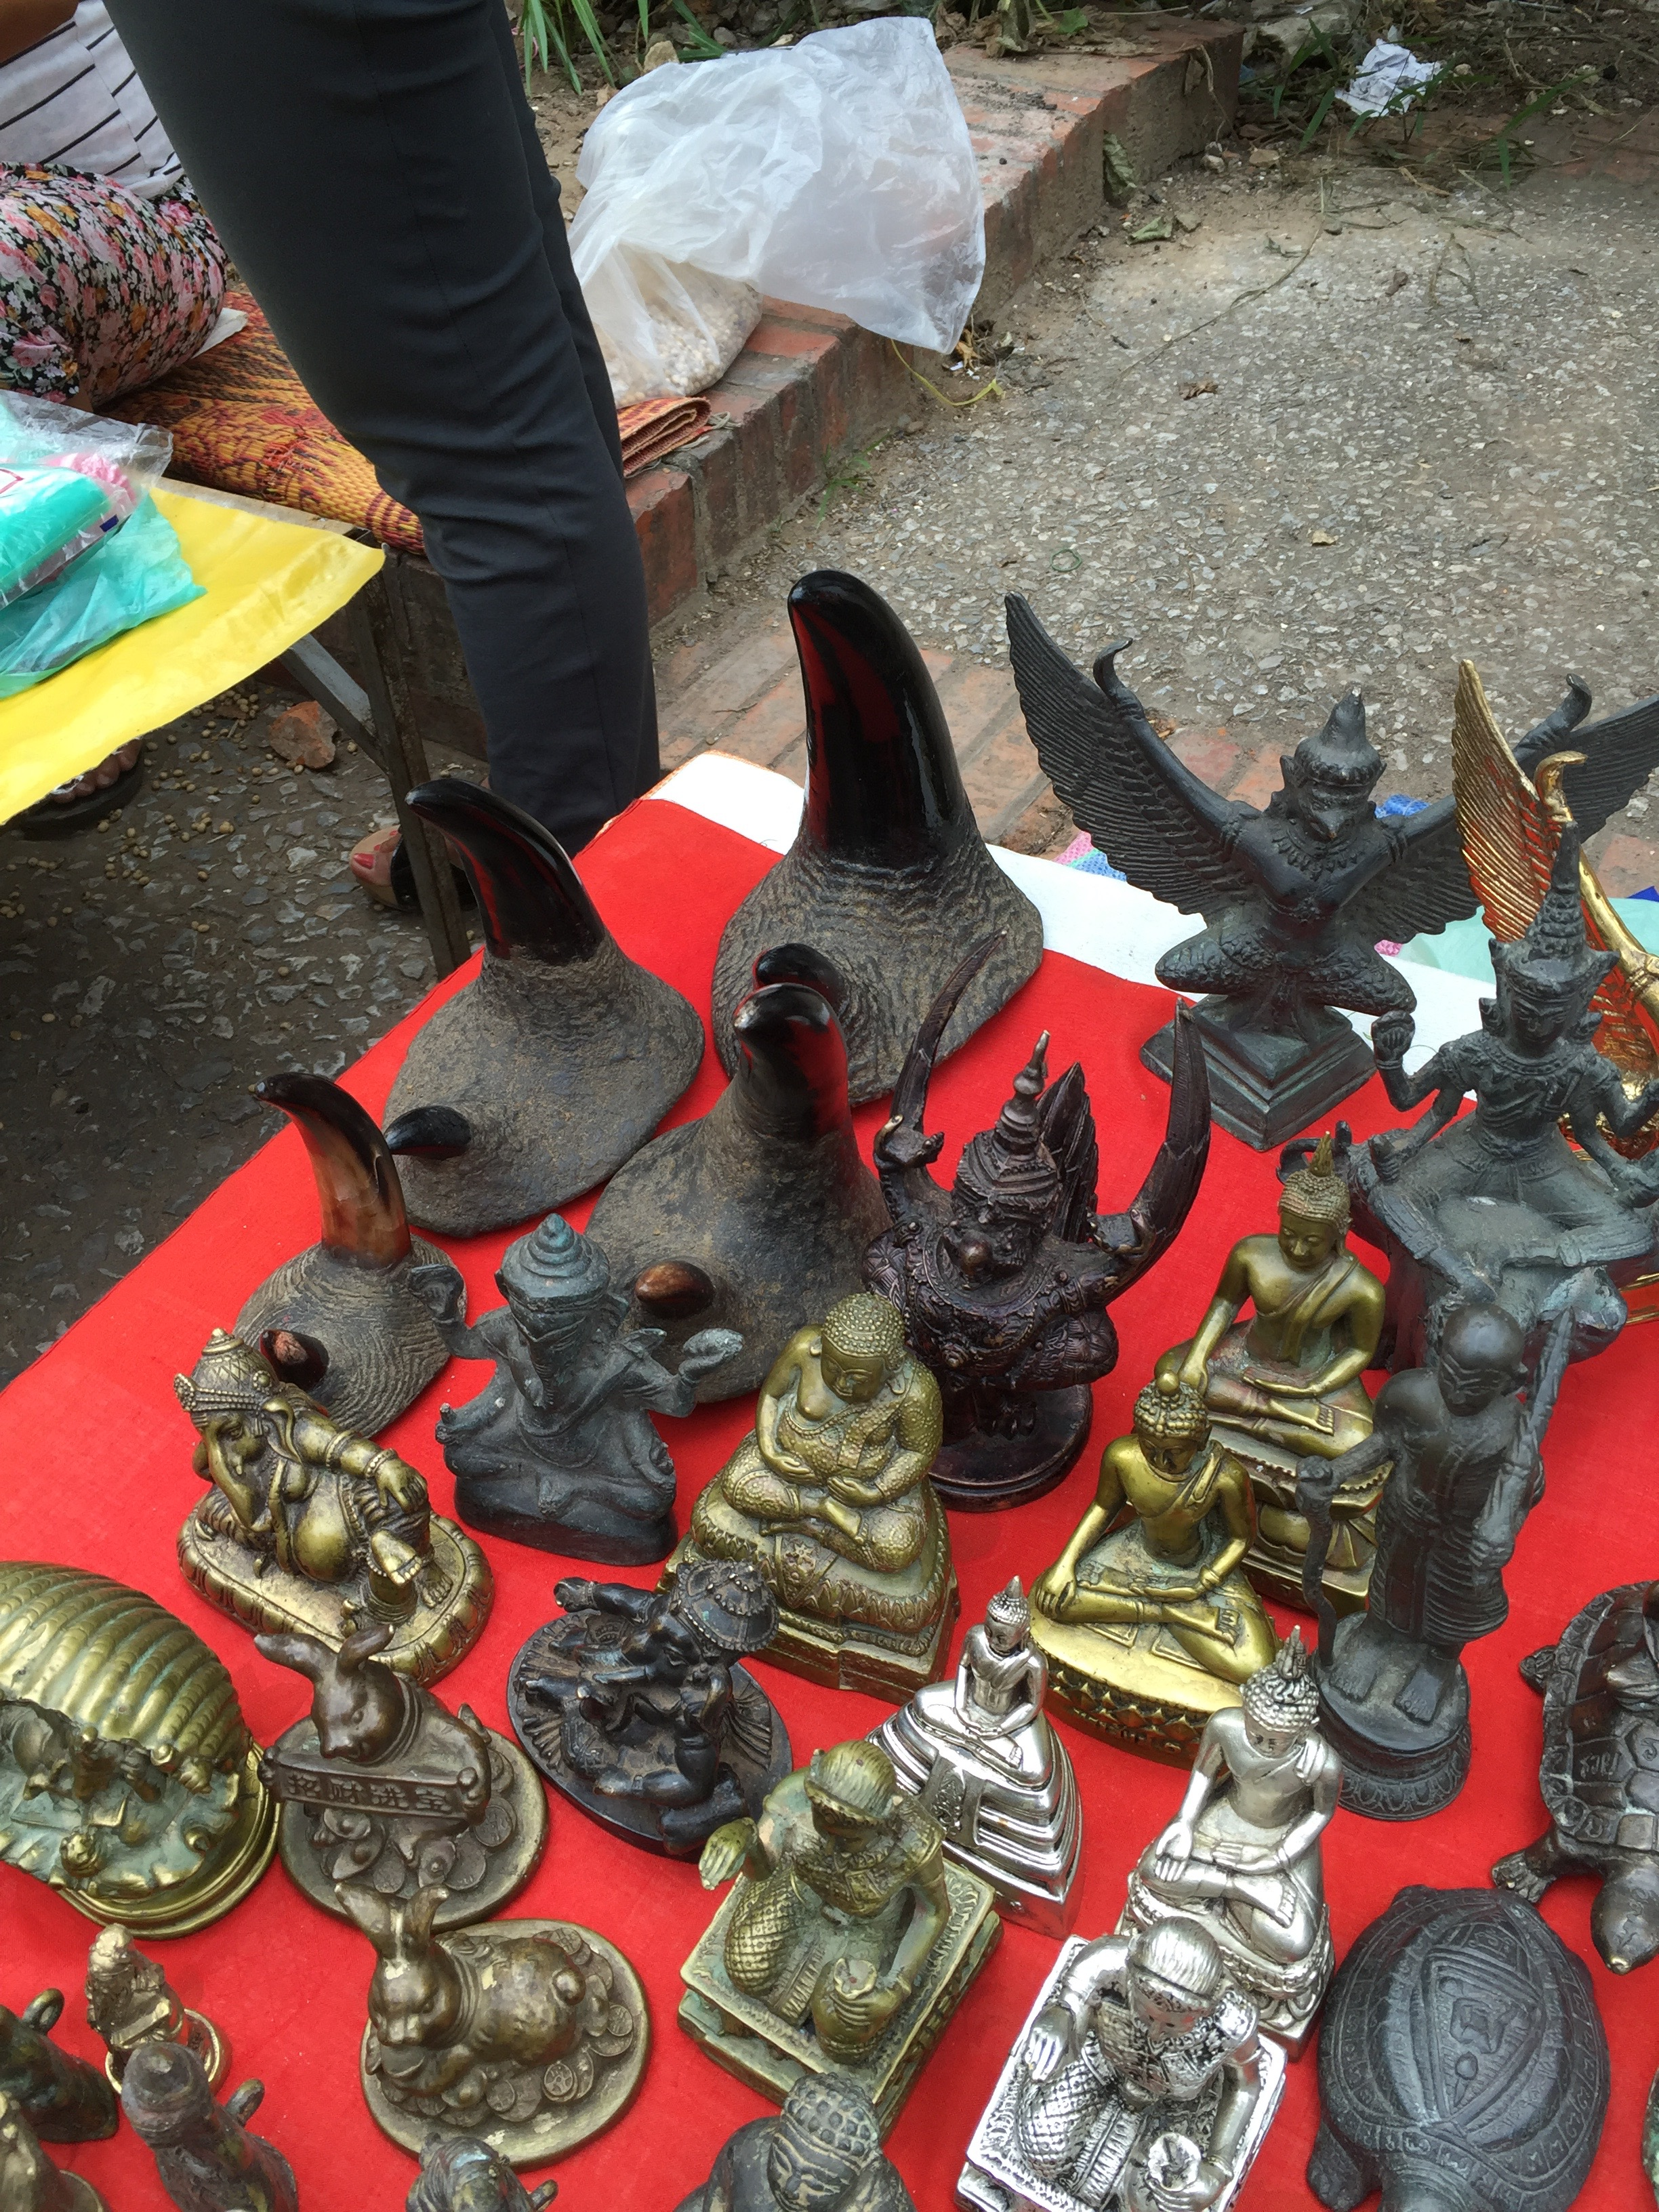 Rhinoceros horns for sale at the street market in Luang Prabang, Laos.